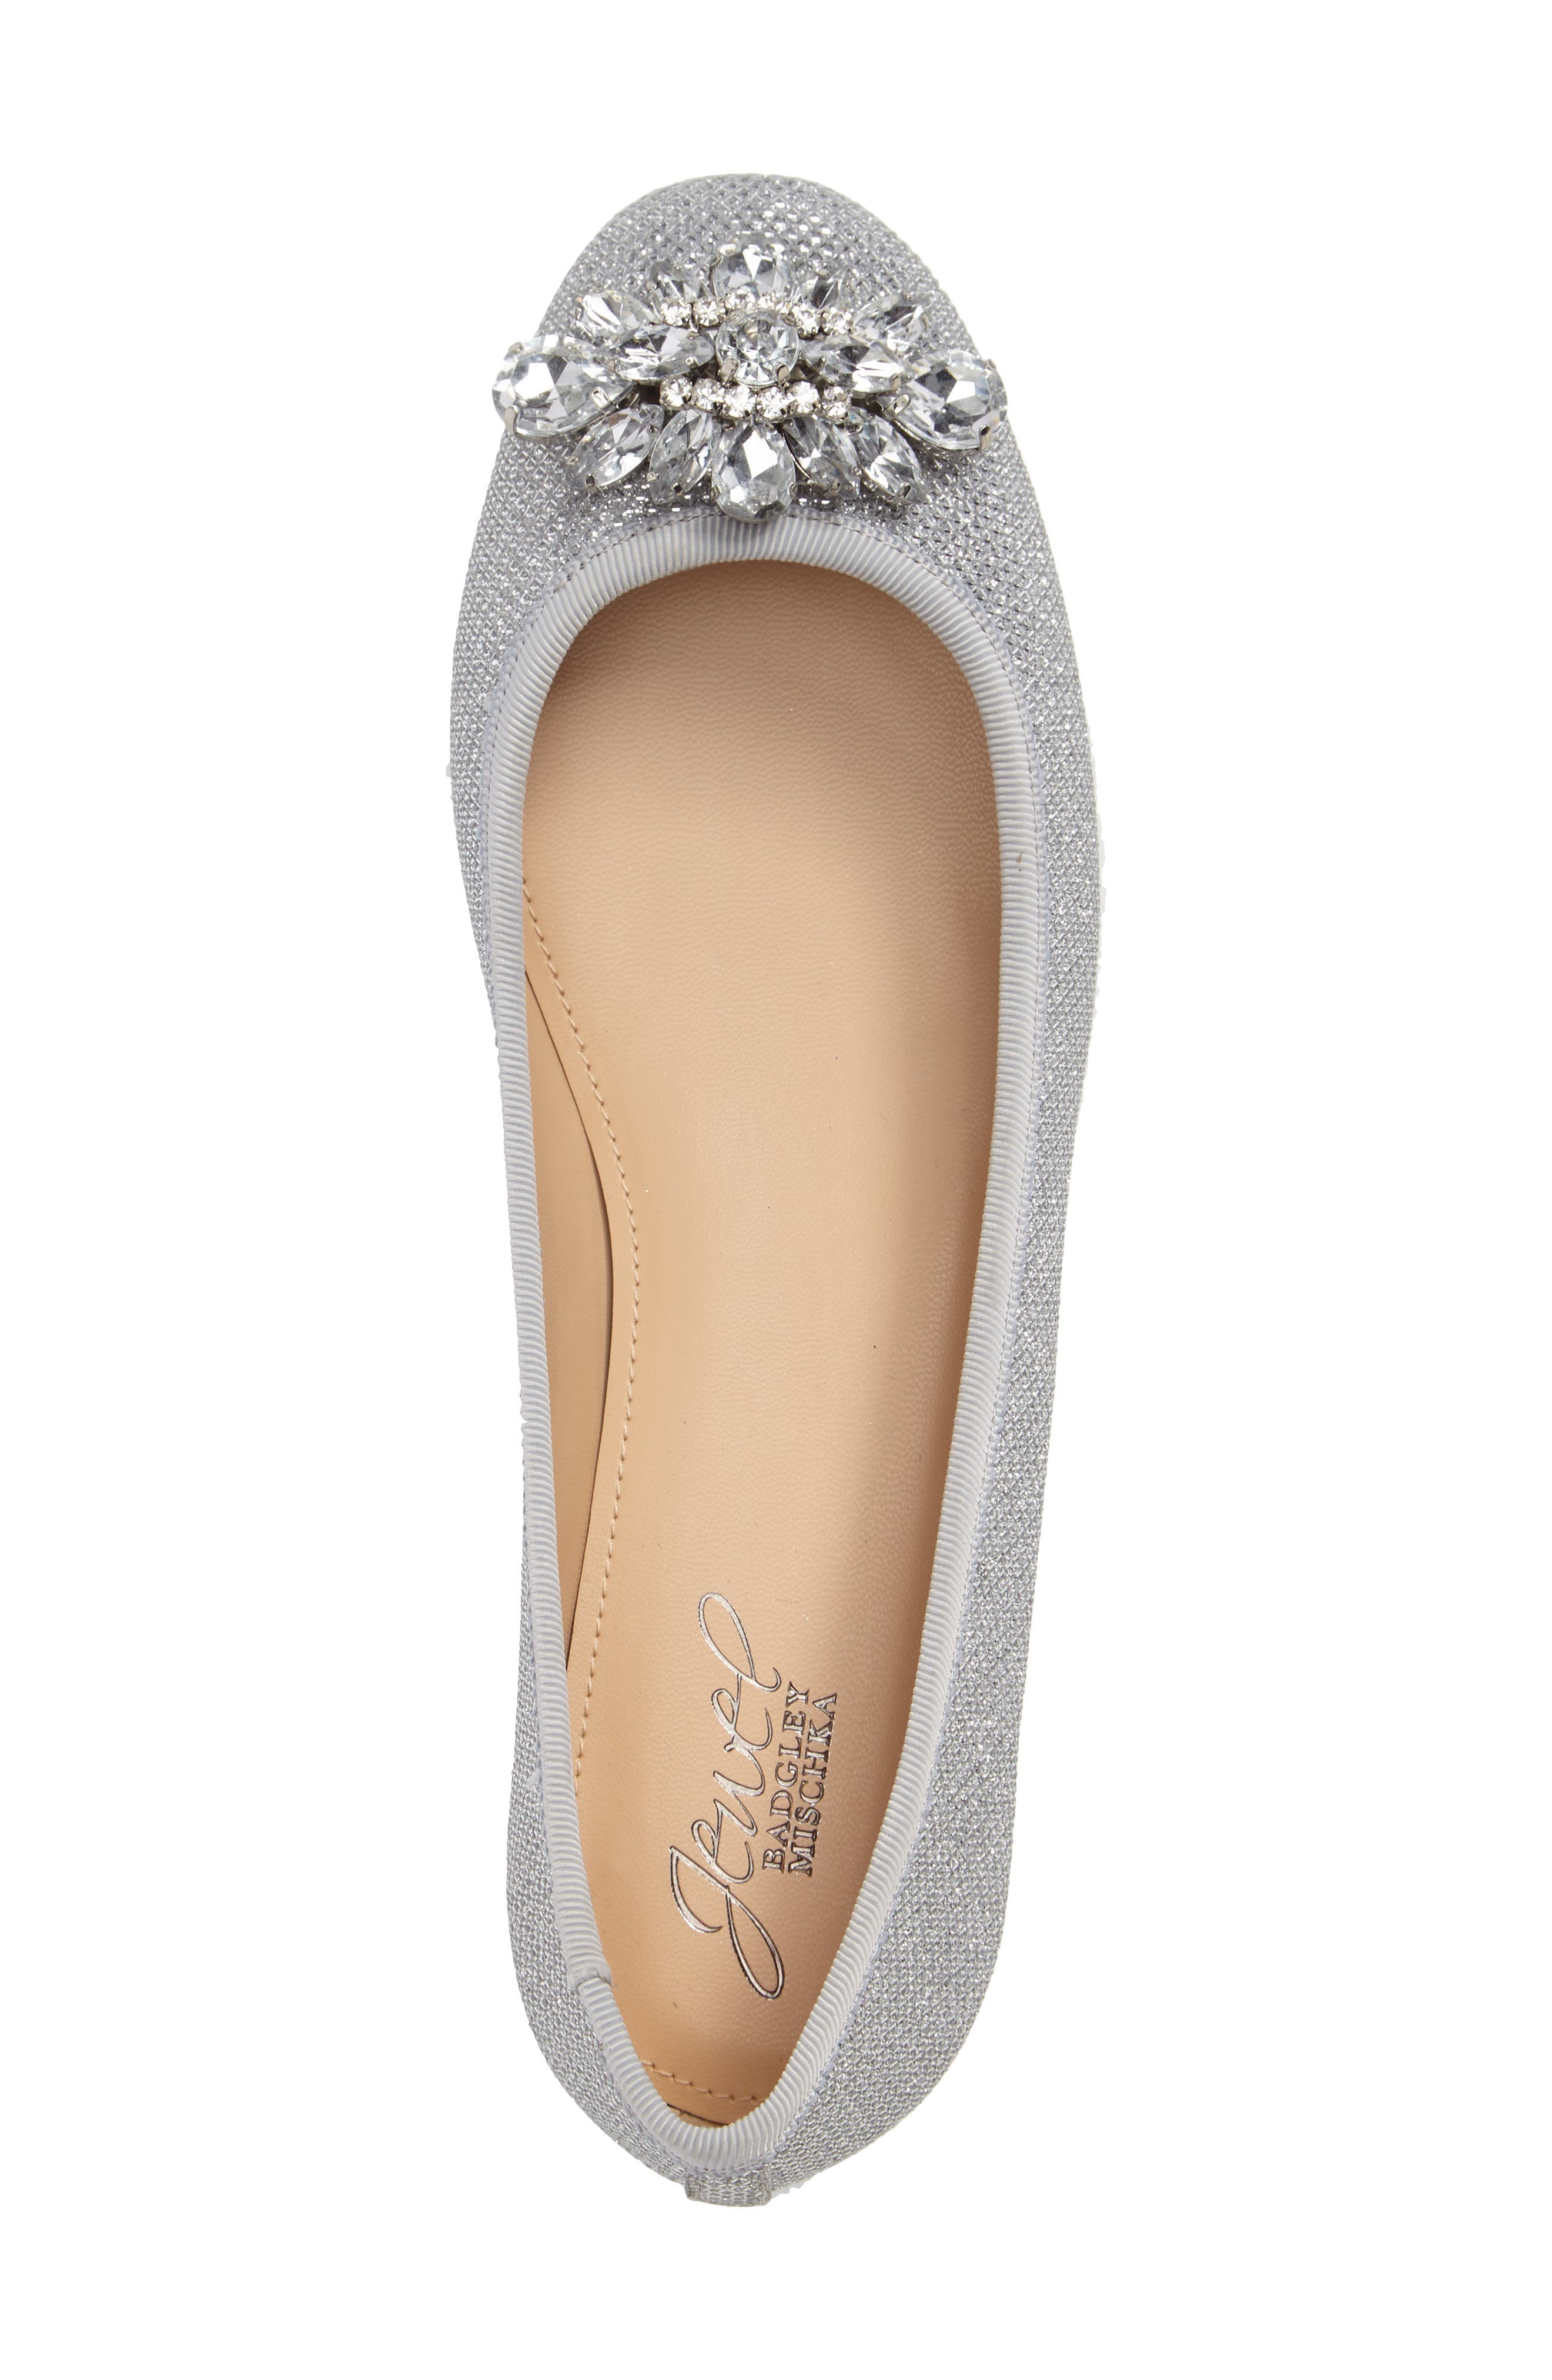 Cabella Embellished Ballet Flat,                             Alternate thumbnail 3, color,                             SILVER FABRIC